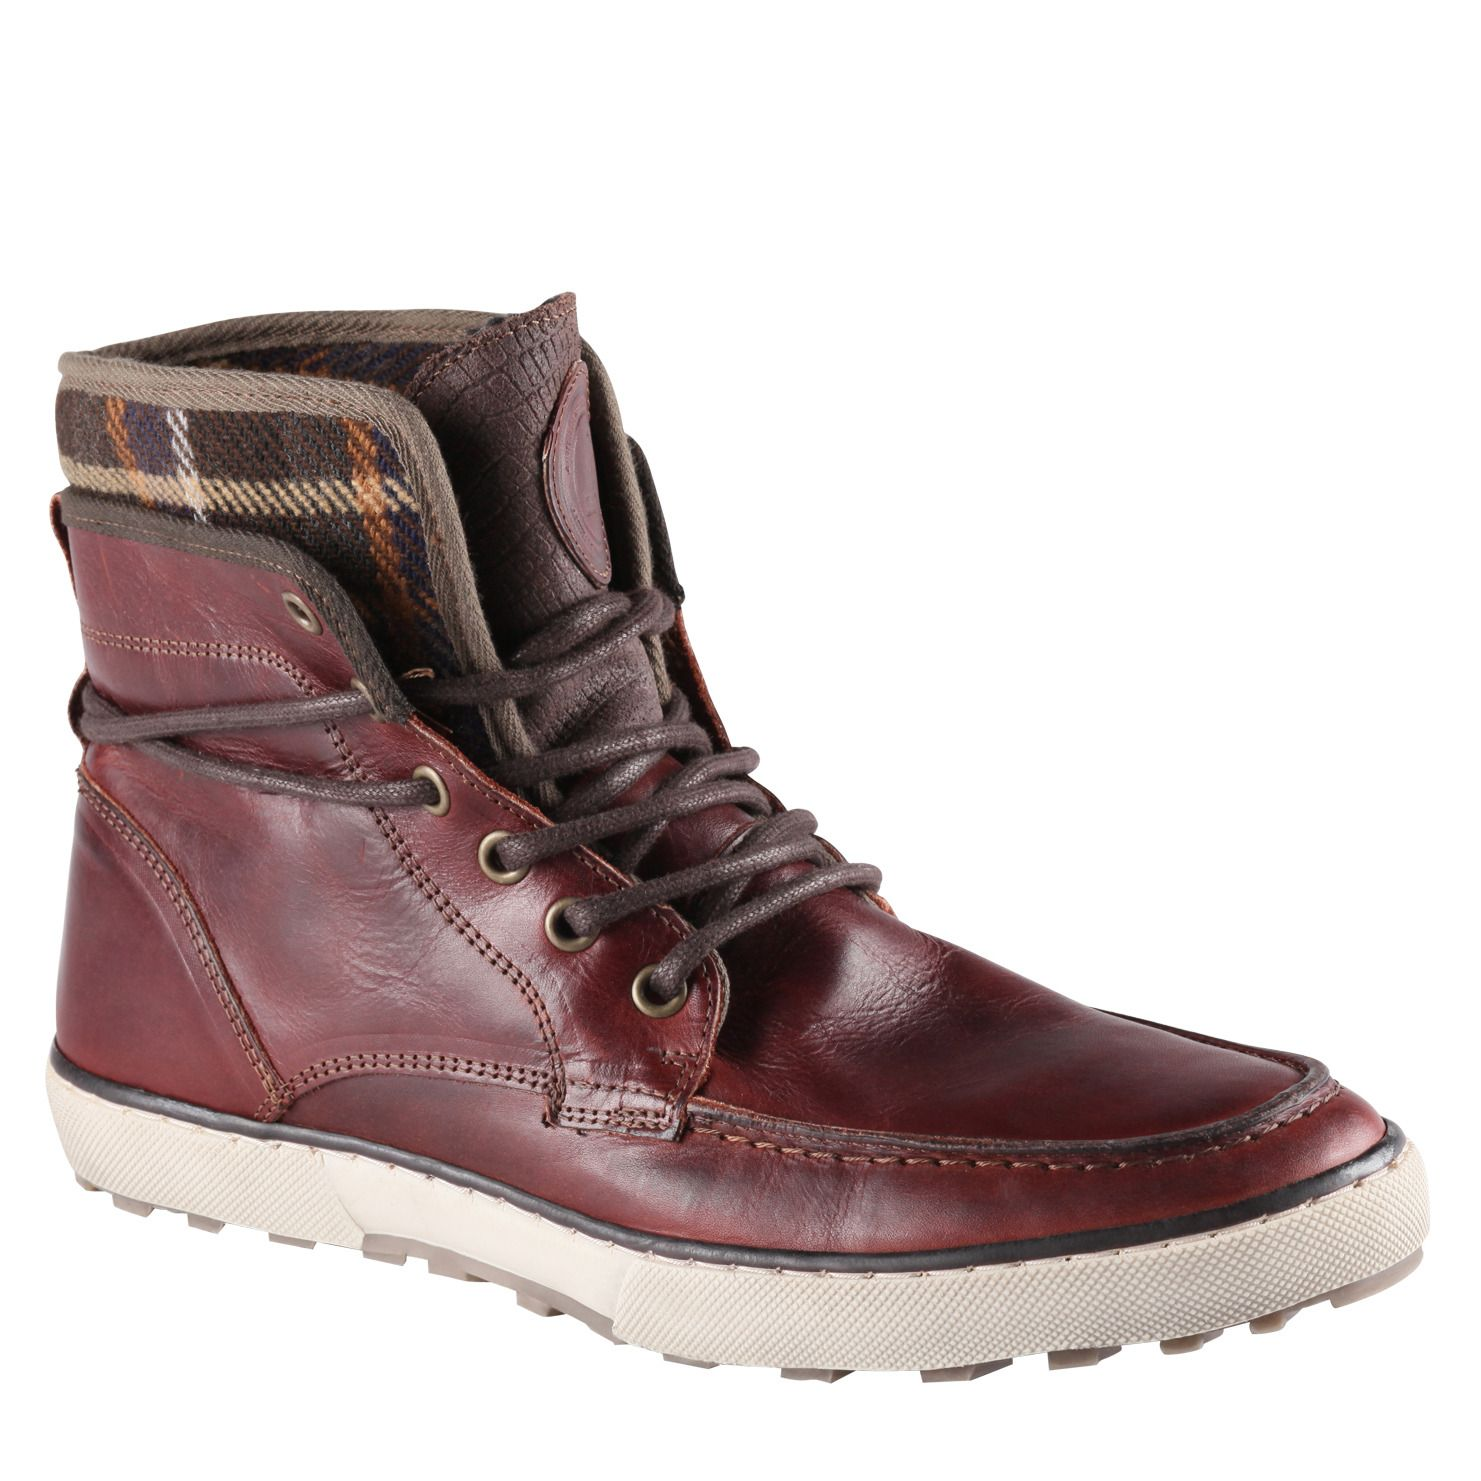 GOCHIE - men's casual boots boots for sale at ALDO Shoes ...